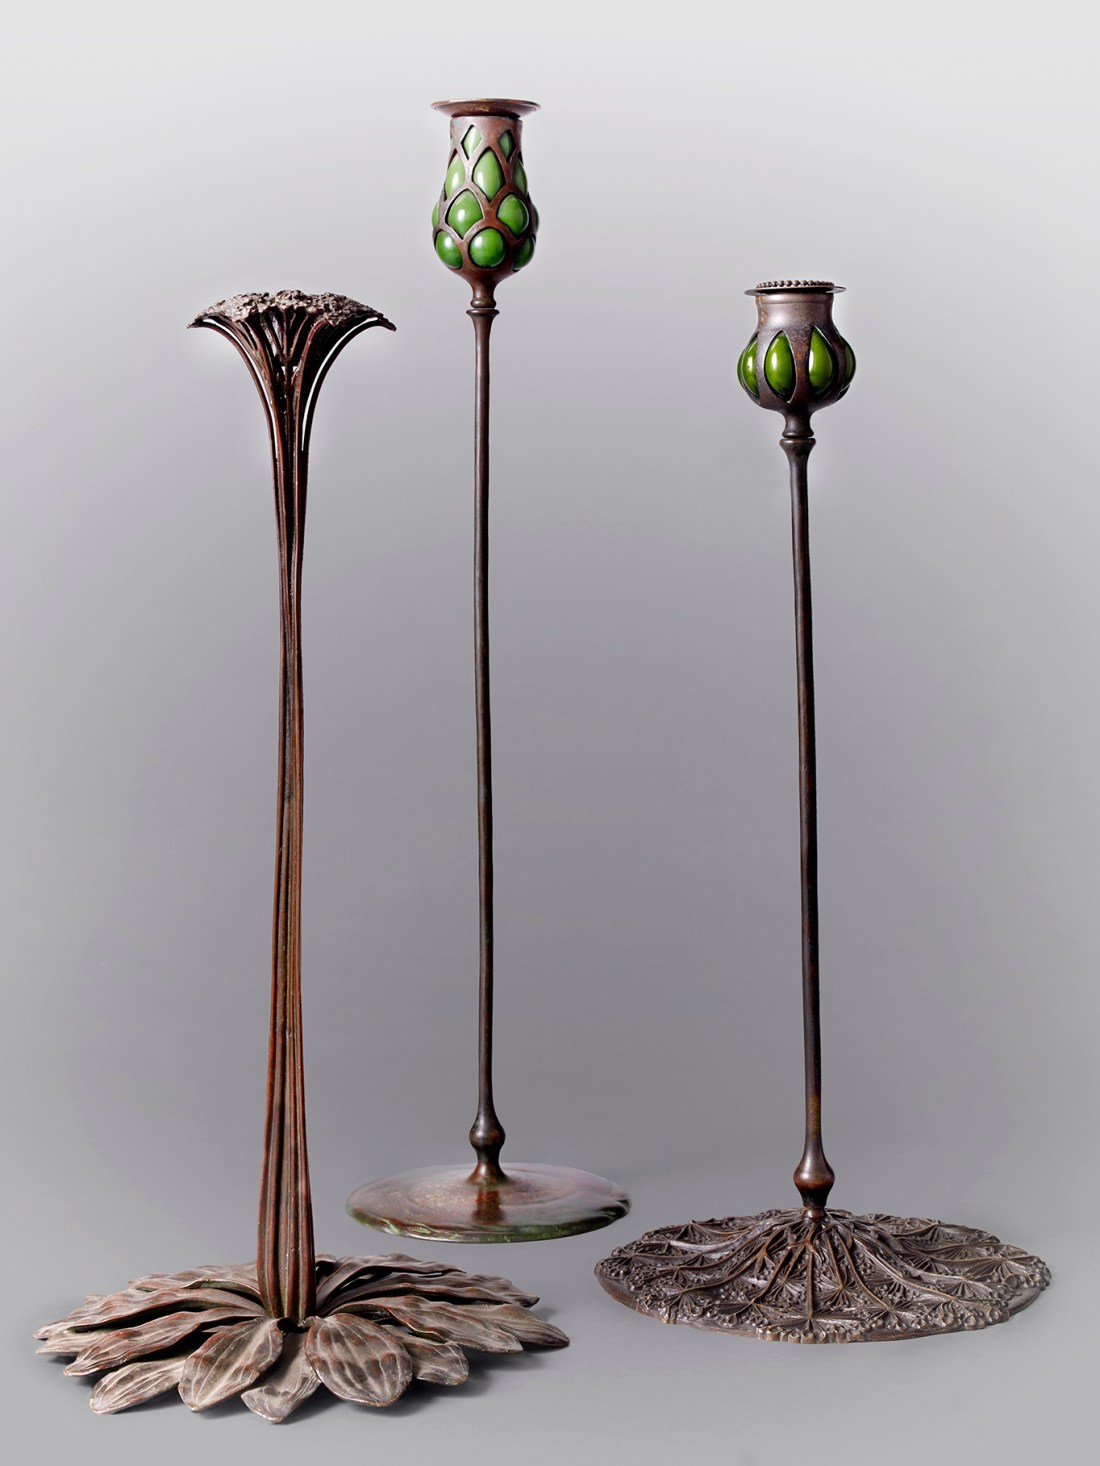 Group of candlesticks. ca. 1900.